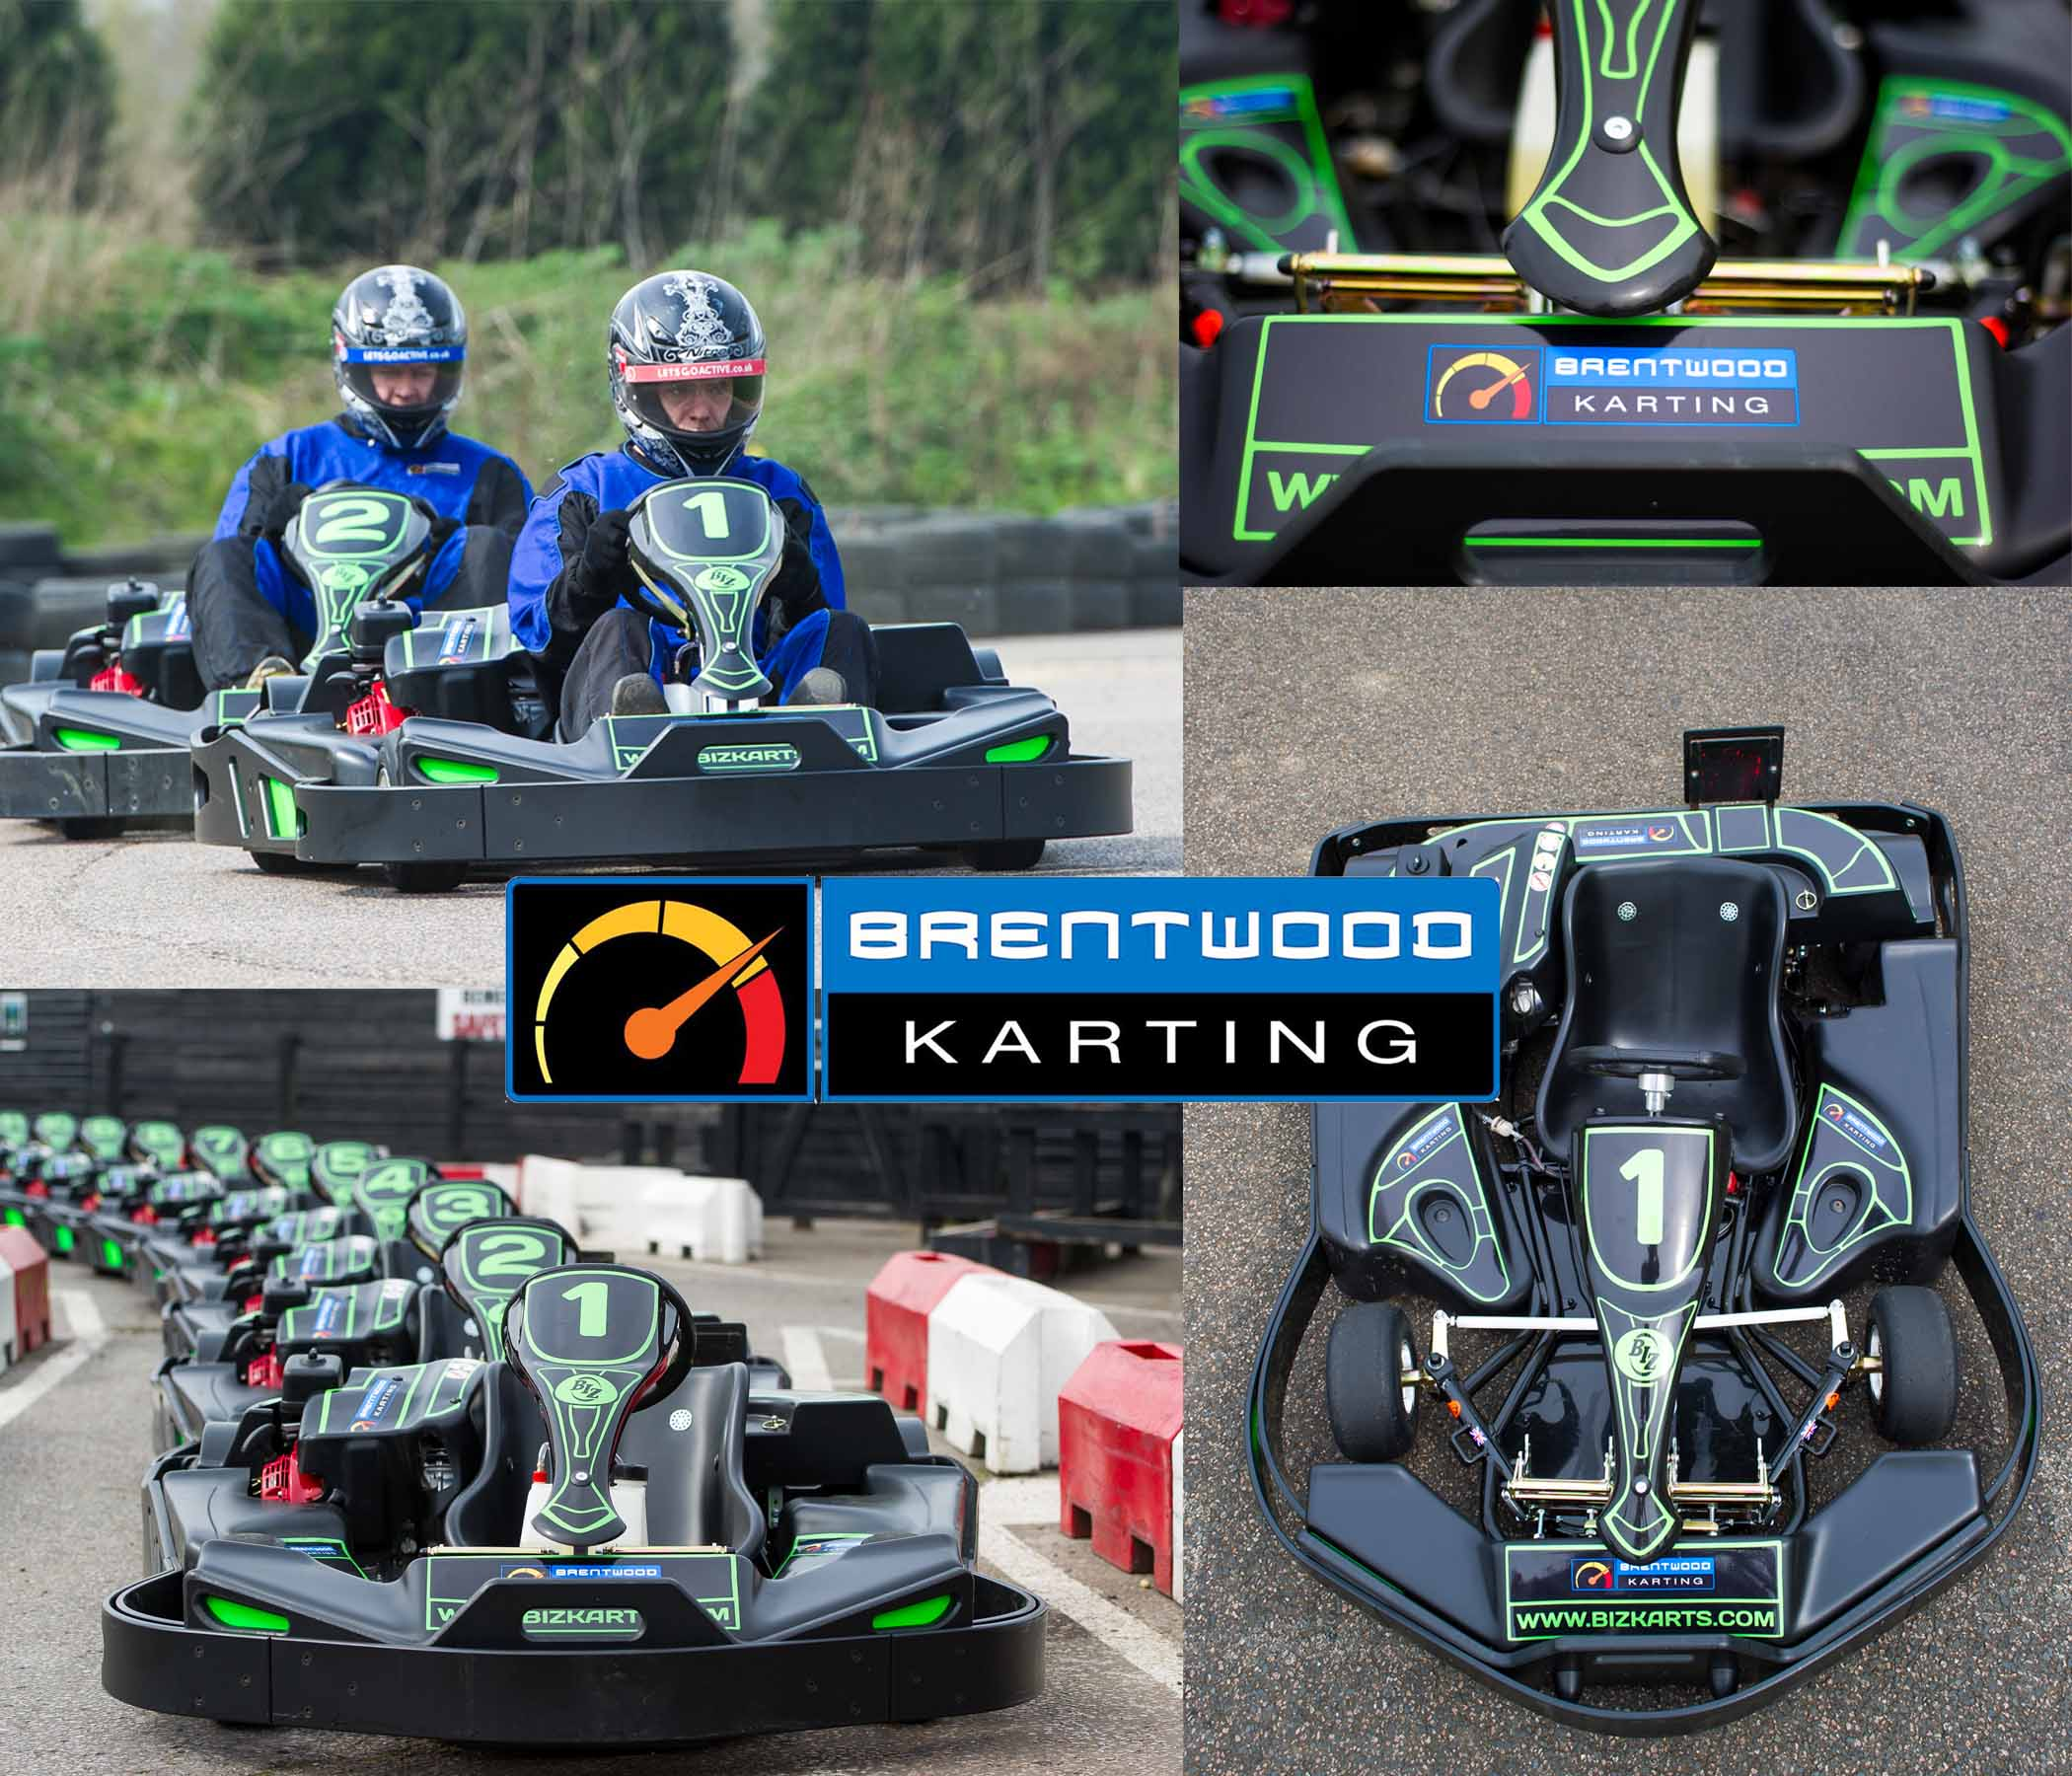 Brentwood karting shoot